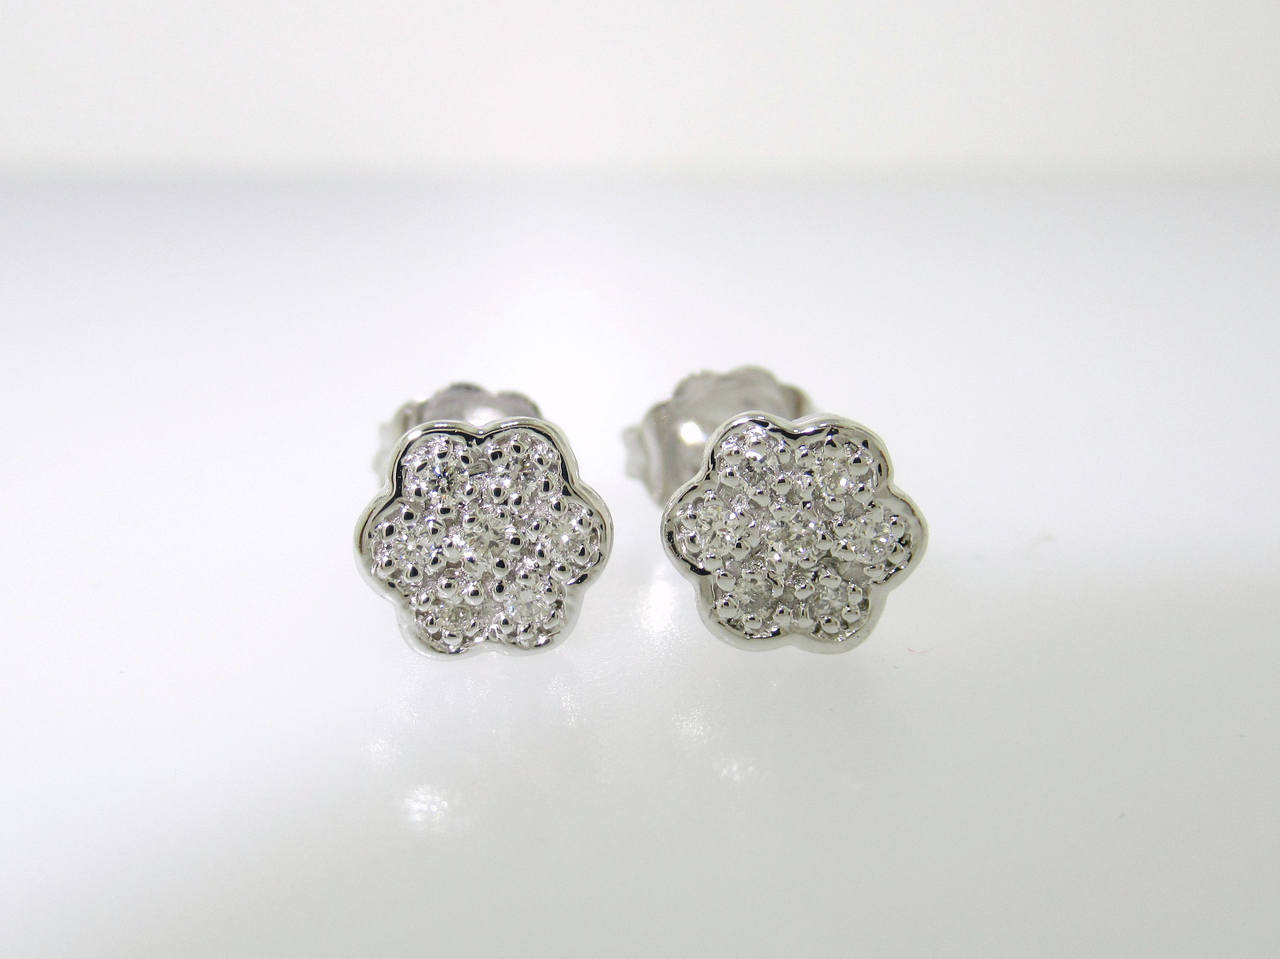 015 Carat Diamond Earrings Flower Earrings Stud Earrings Tiny